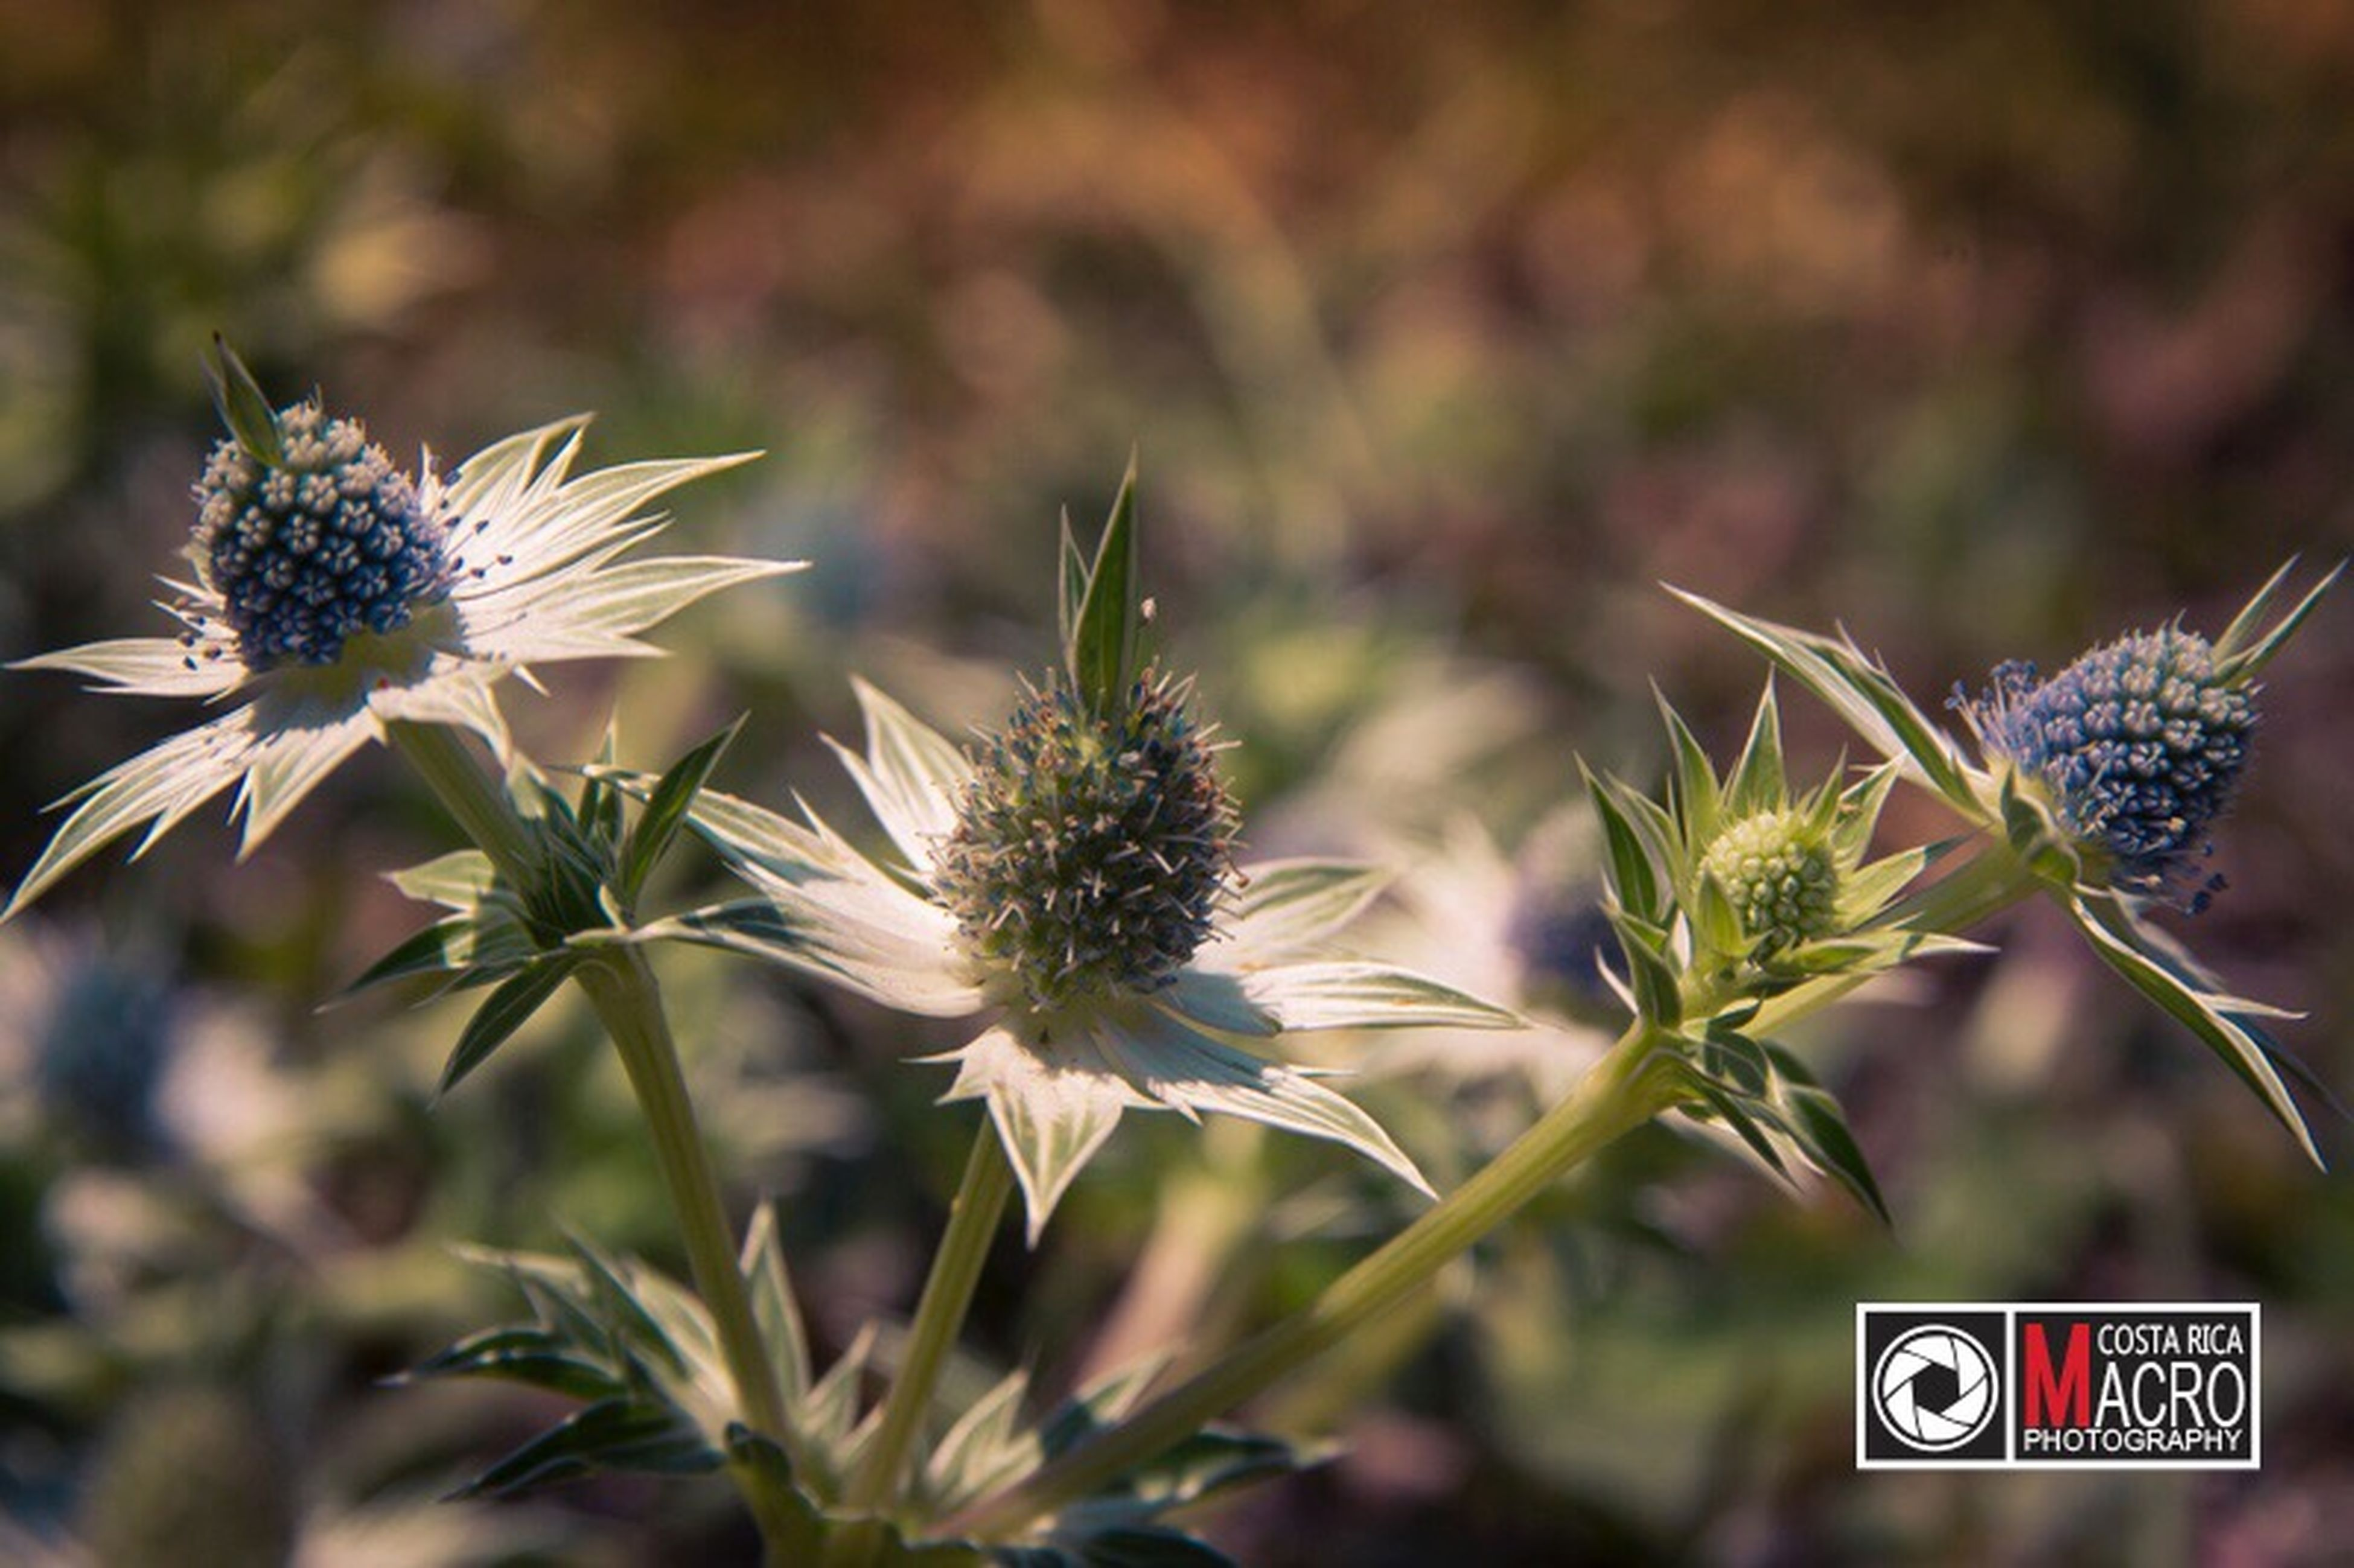 flower, focus on foreground, plant, close-up, no people, outdoors, nature, growth, fragility, freshness, thistle, day, beauty in nature, flower head